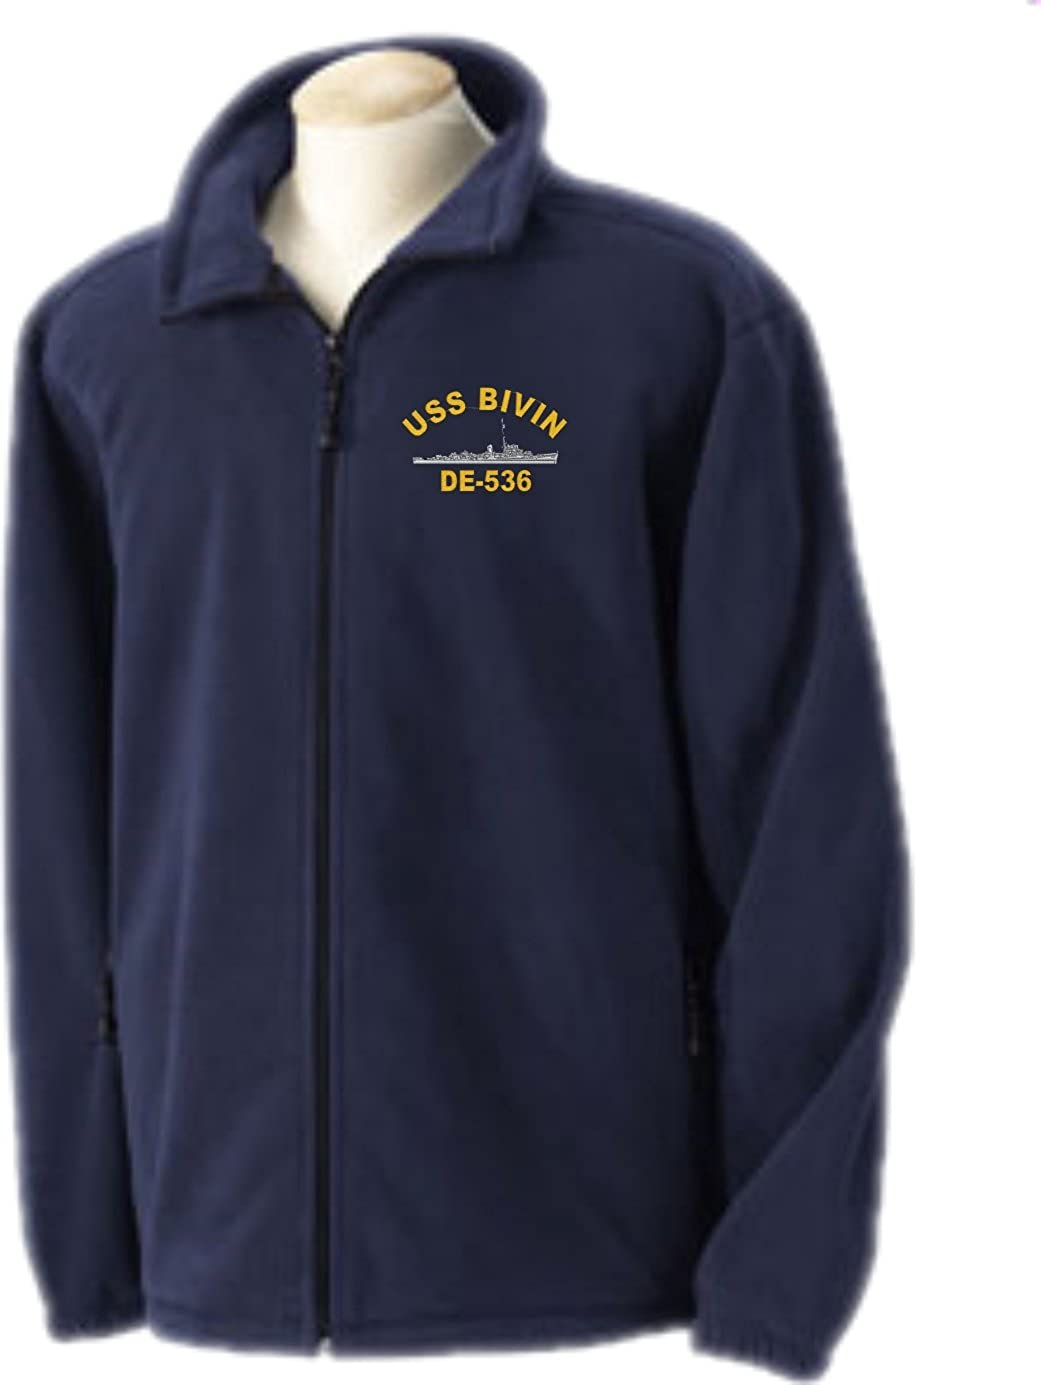 Custom Military Apparel USS Biv In DE-536 Embroidered Fleece Jacket Sizes Small-4X